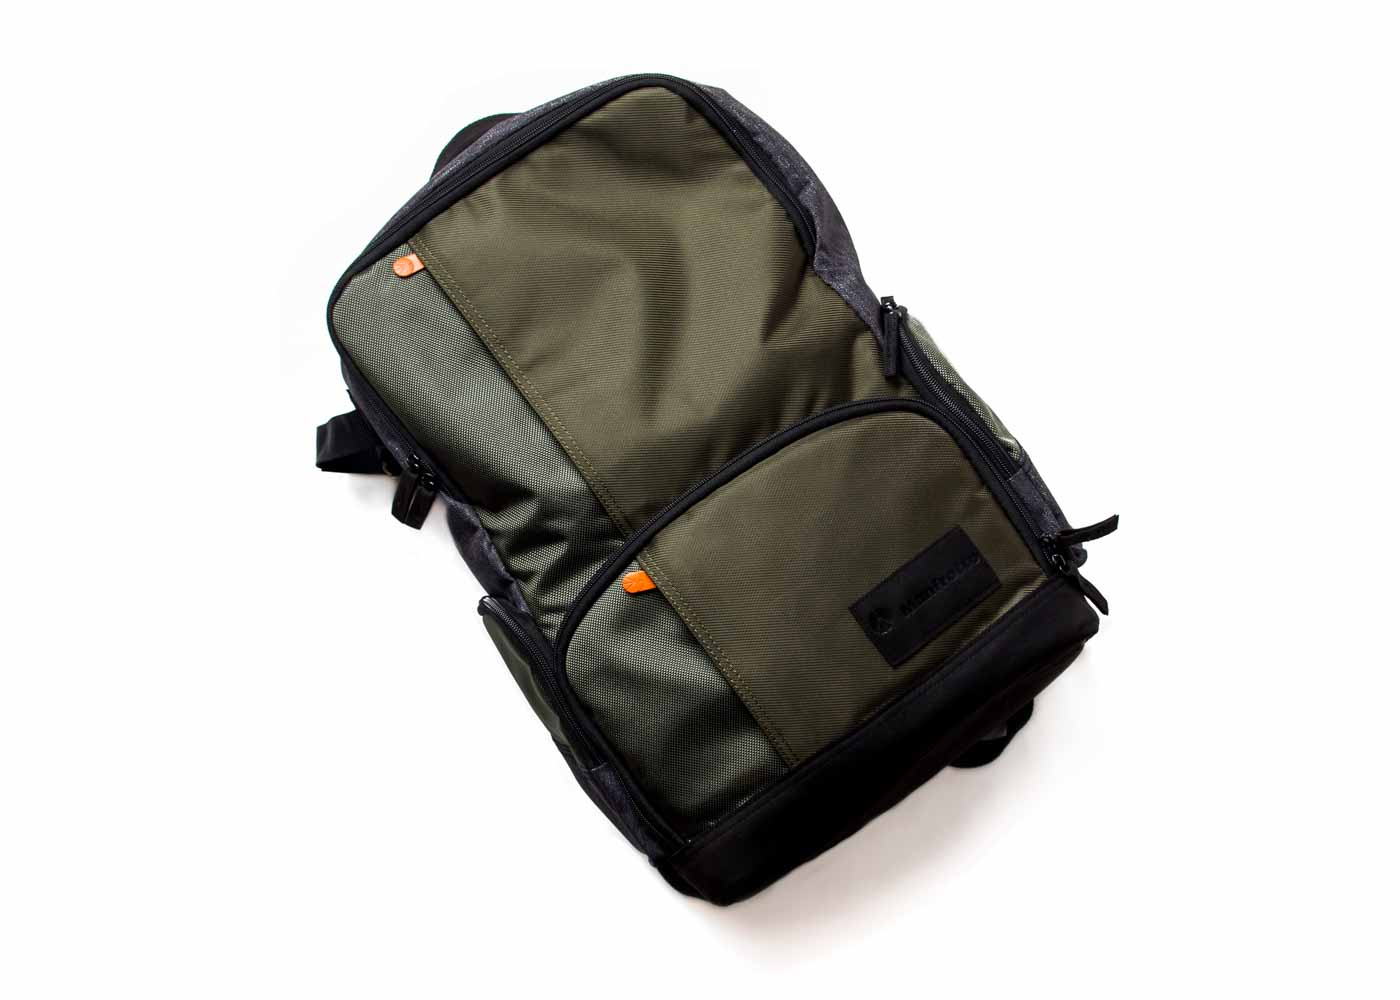 Manfrotto has designed a pretty fantastic knapsack for photography gear that also happens to be super comfortable.